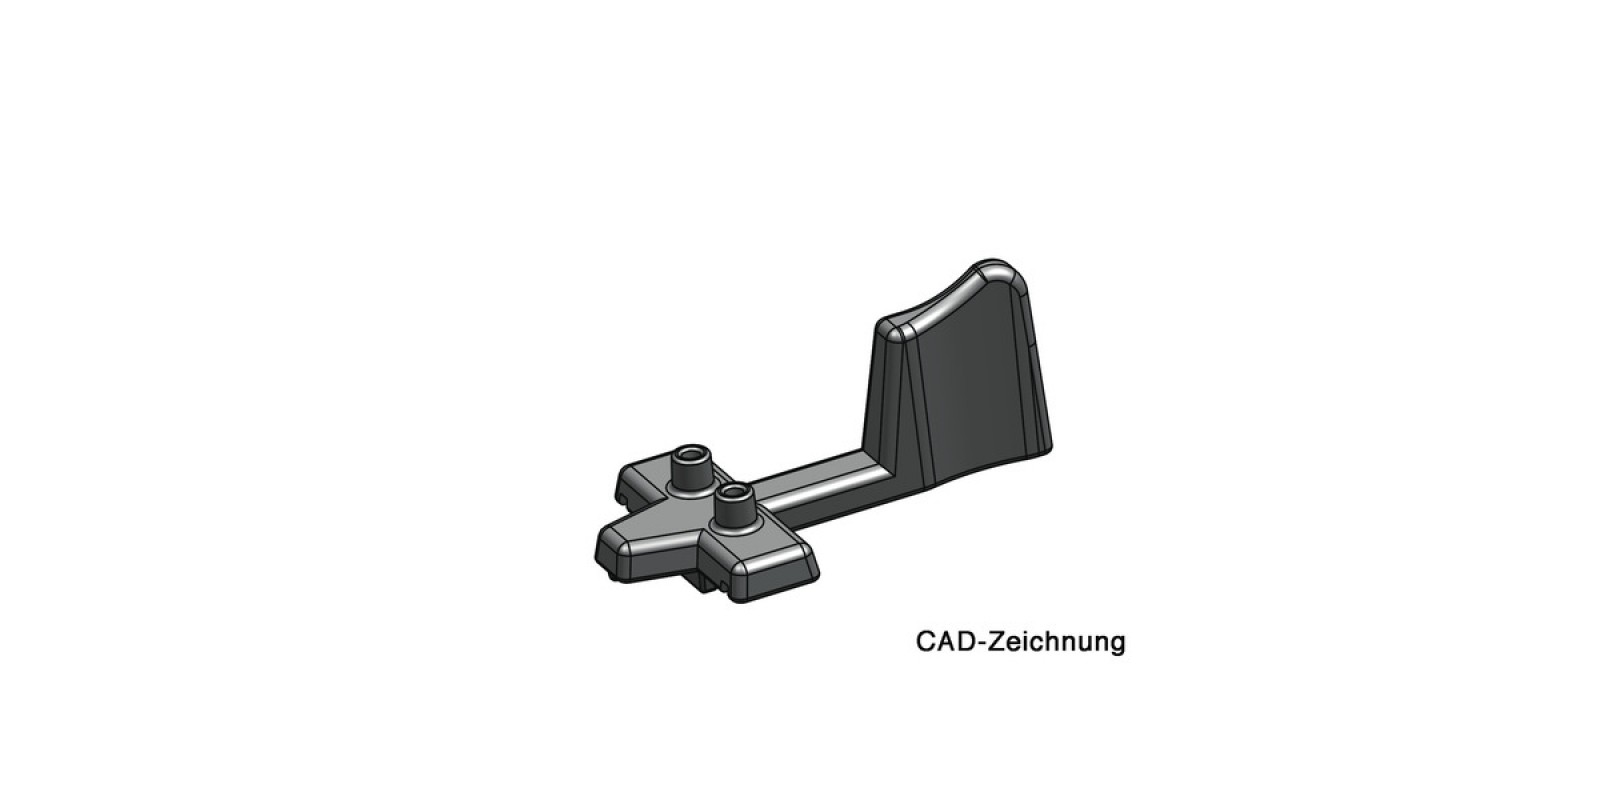 RO42603 - Assembly aid for ROCO LINE toothed rack